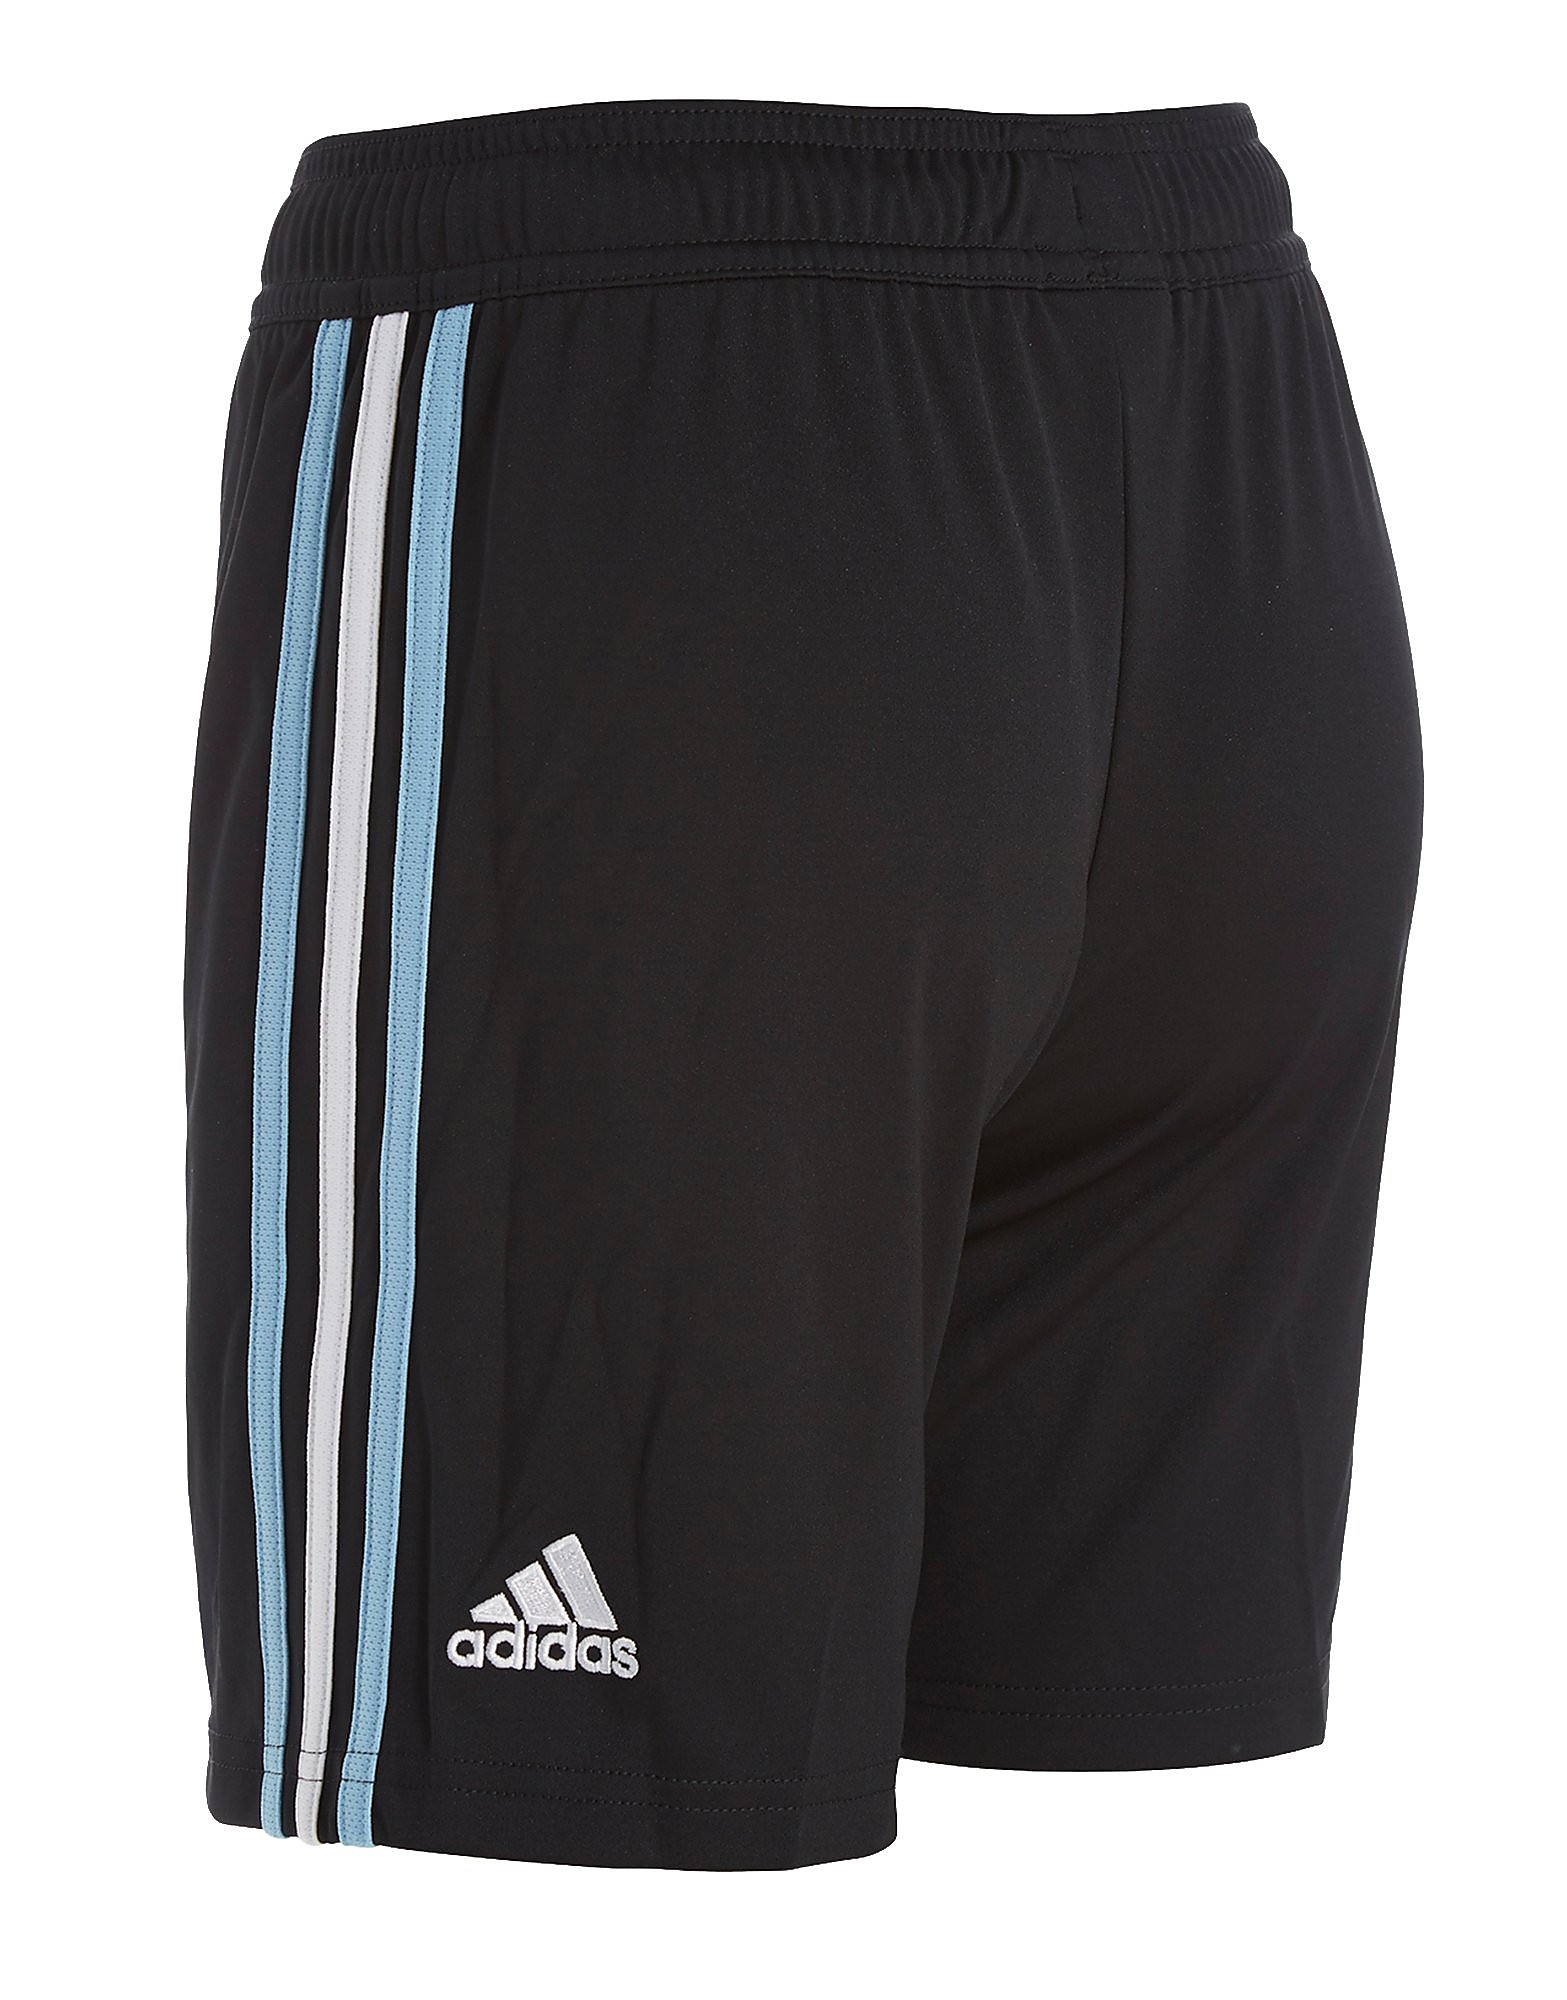 adidas Argentina 2017/18 Home Shorts Junior